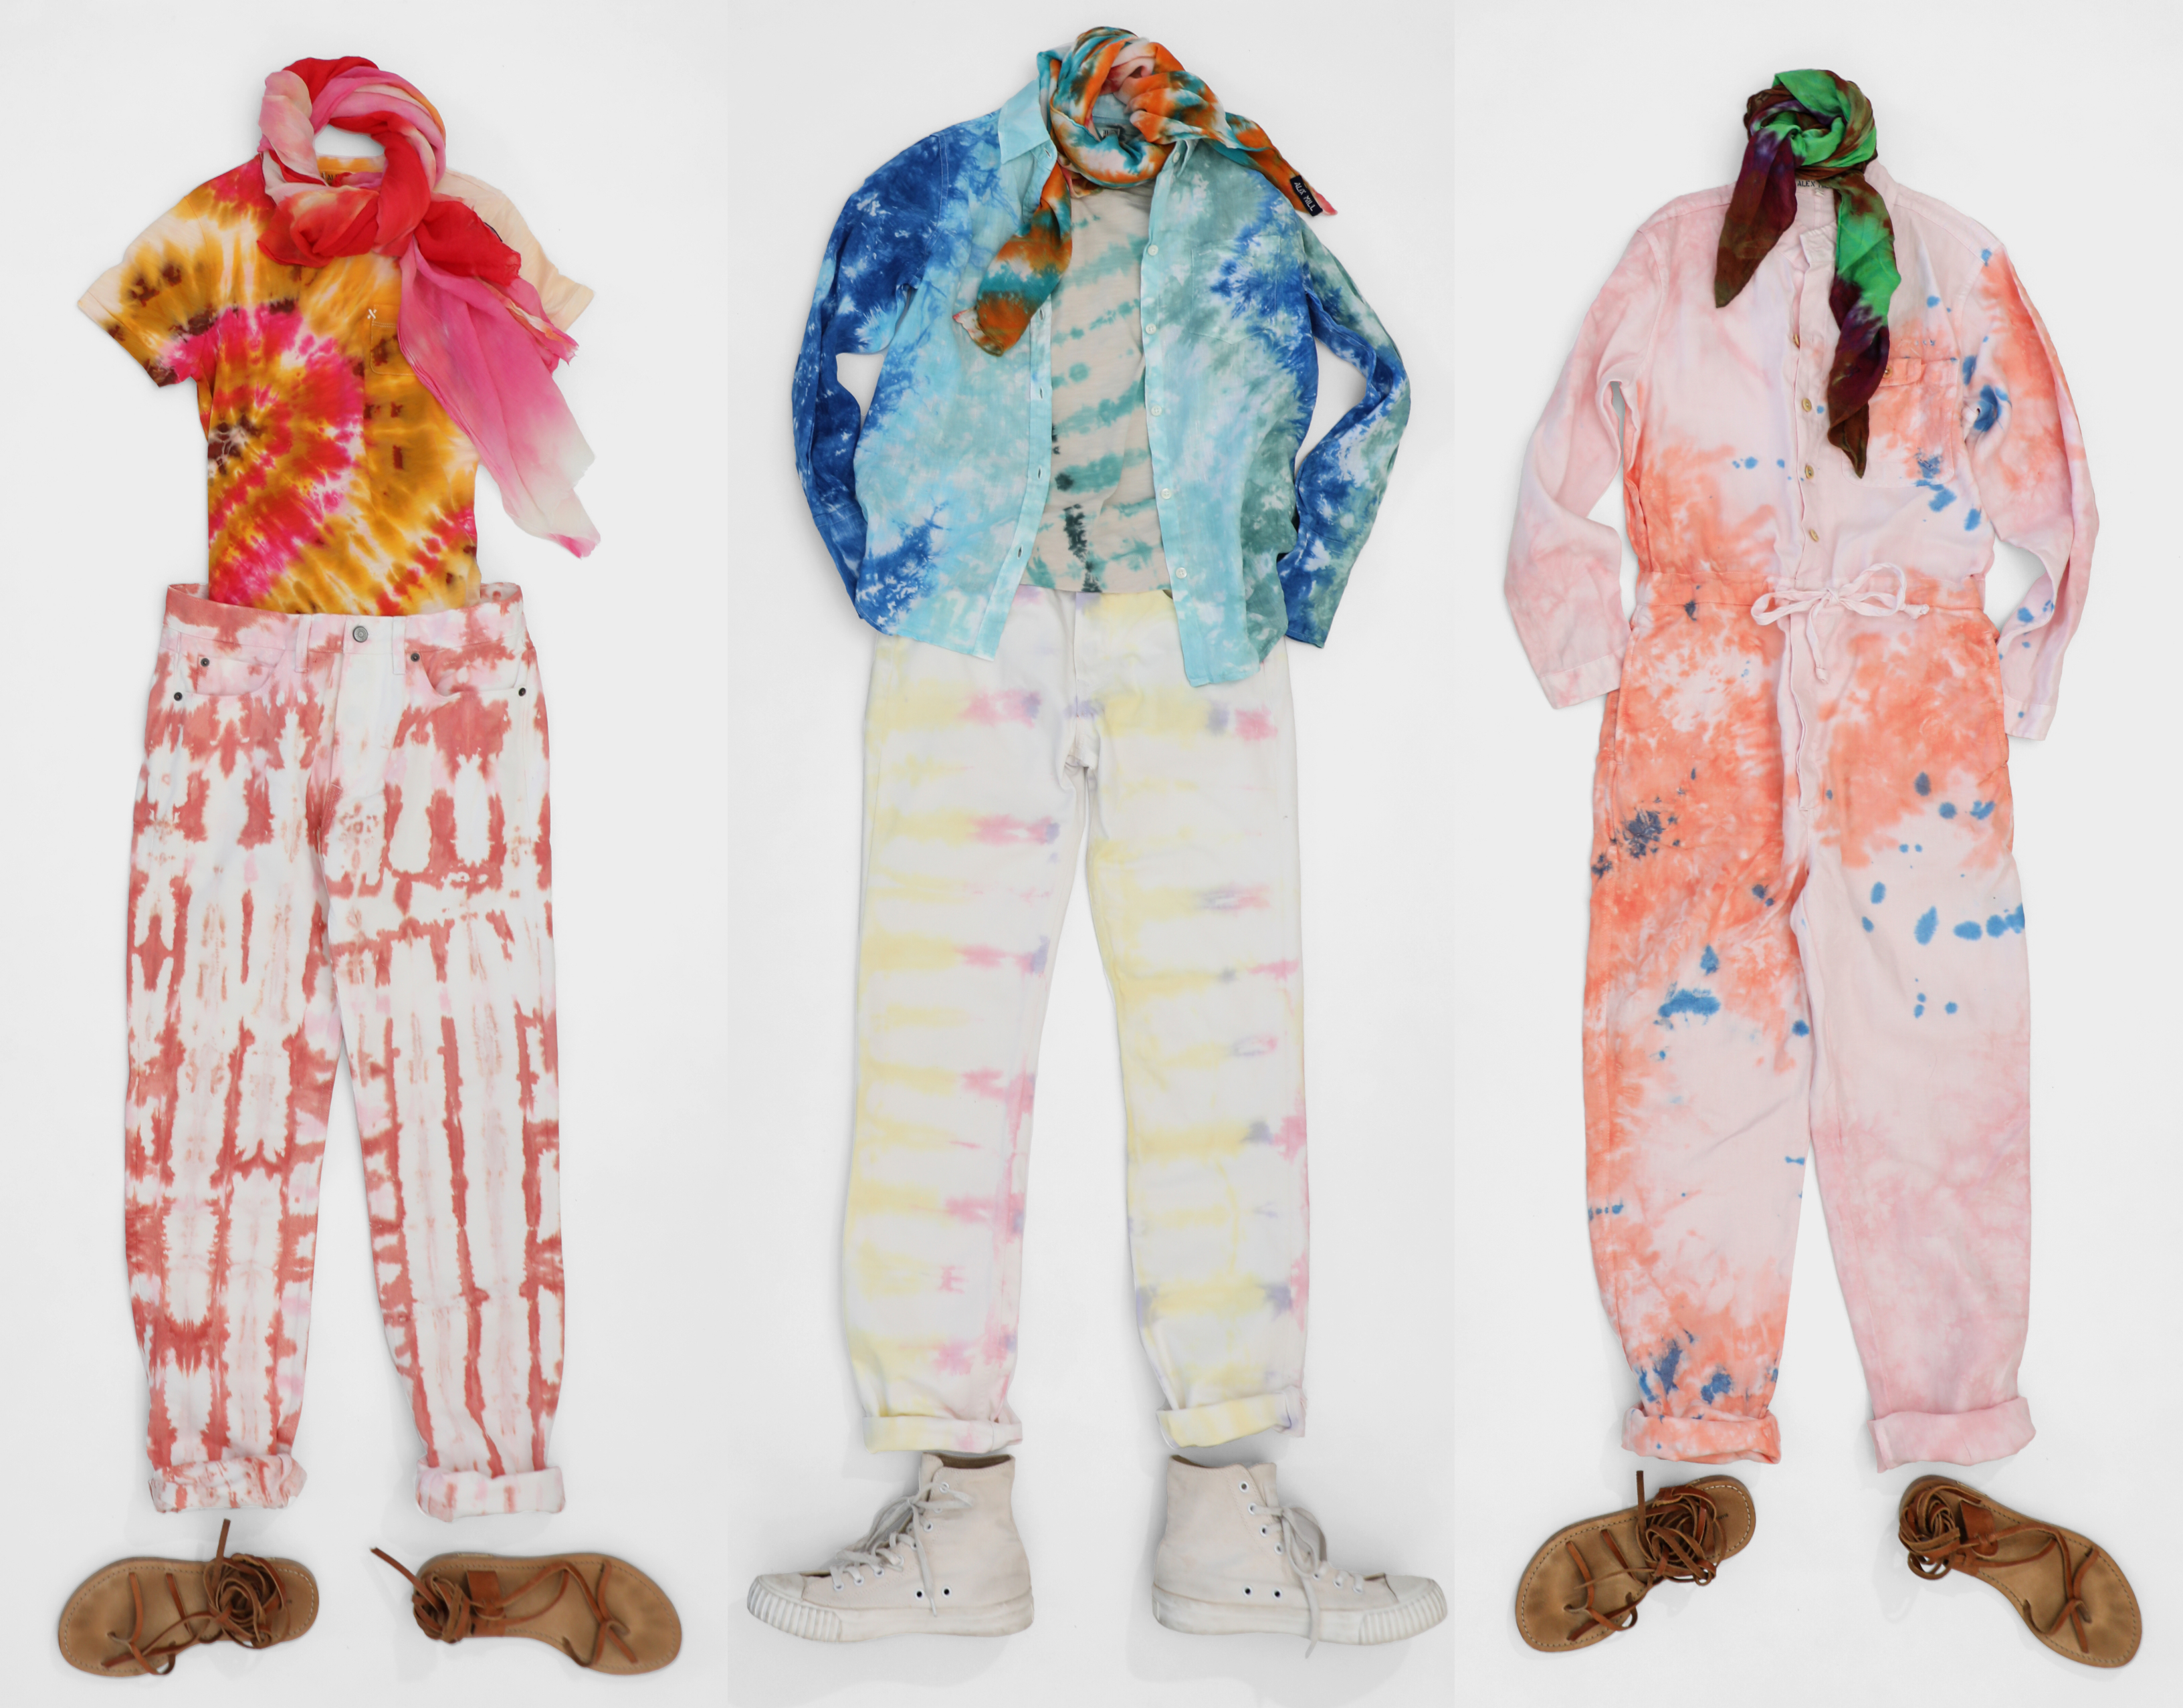 Lots of tie-dyed clothes combined together by the fashion label Alex Mill